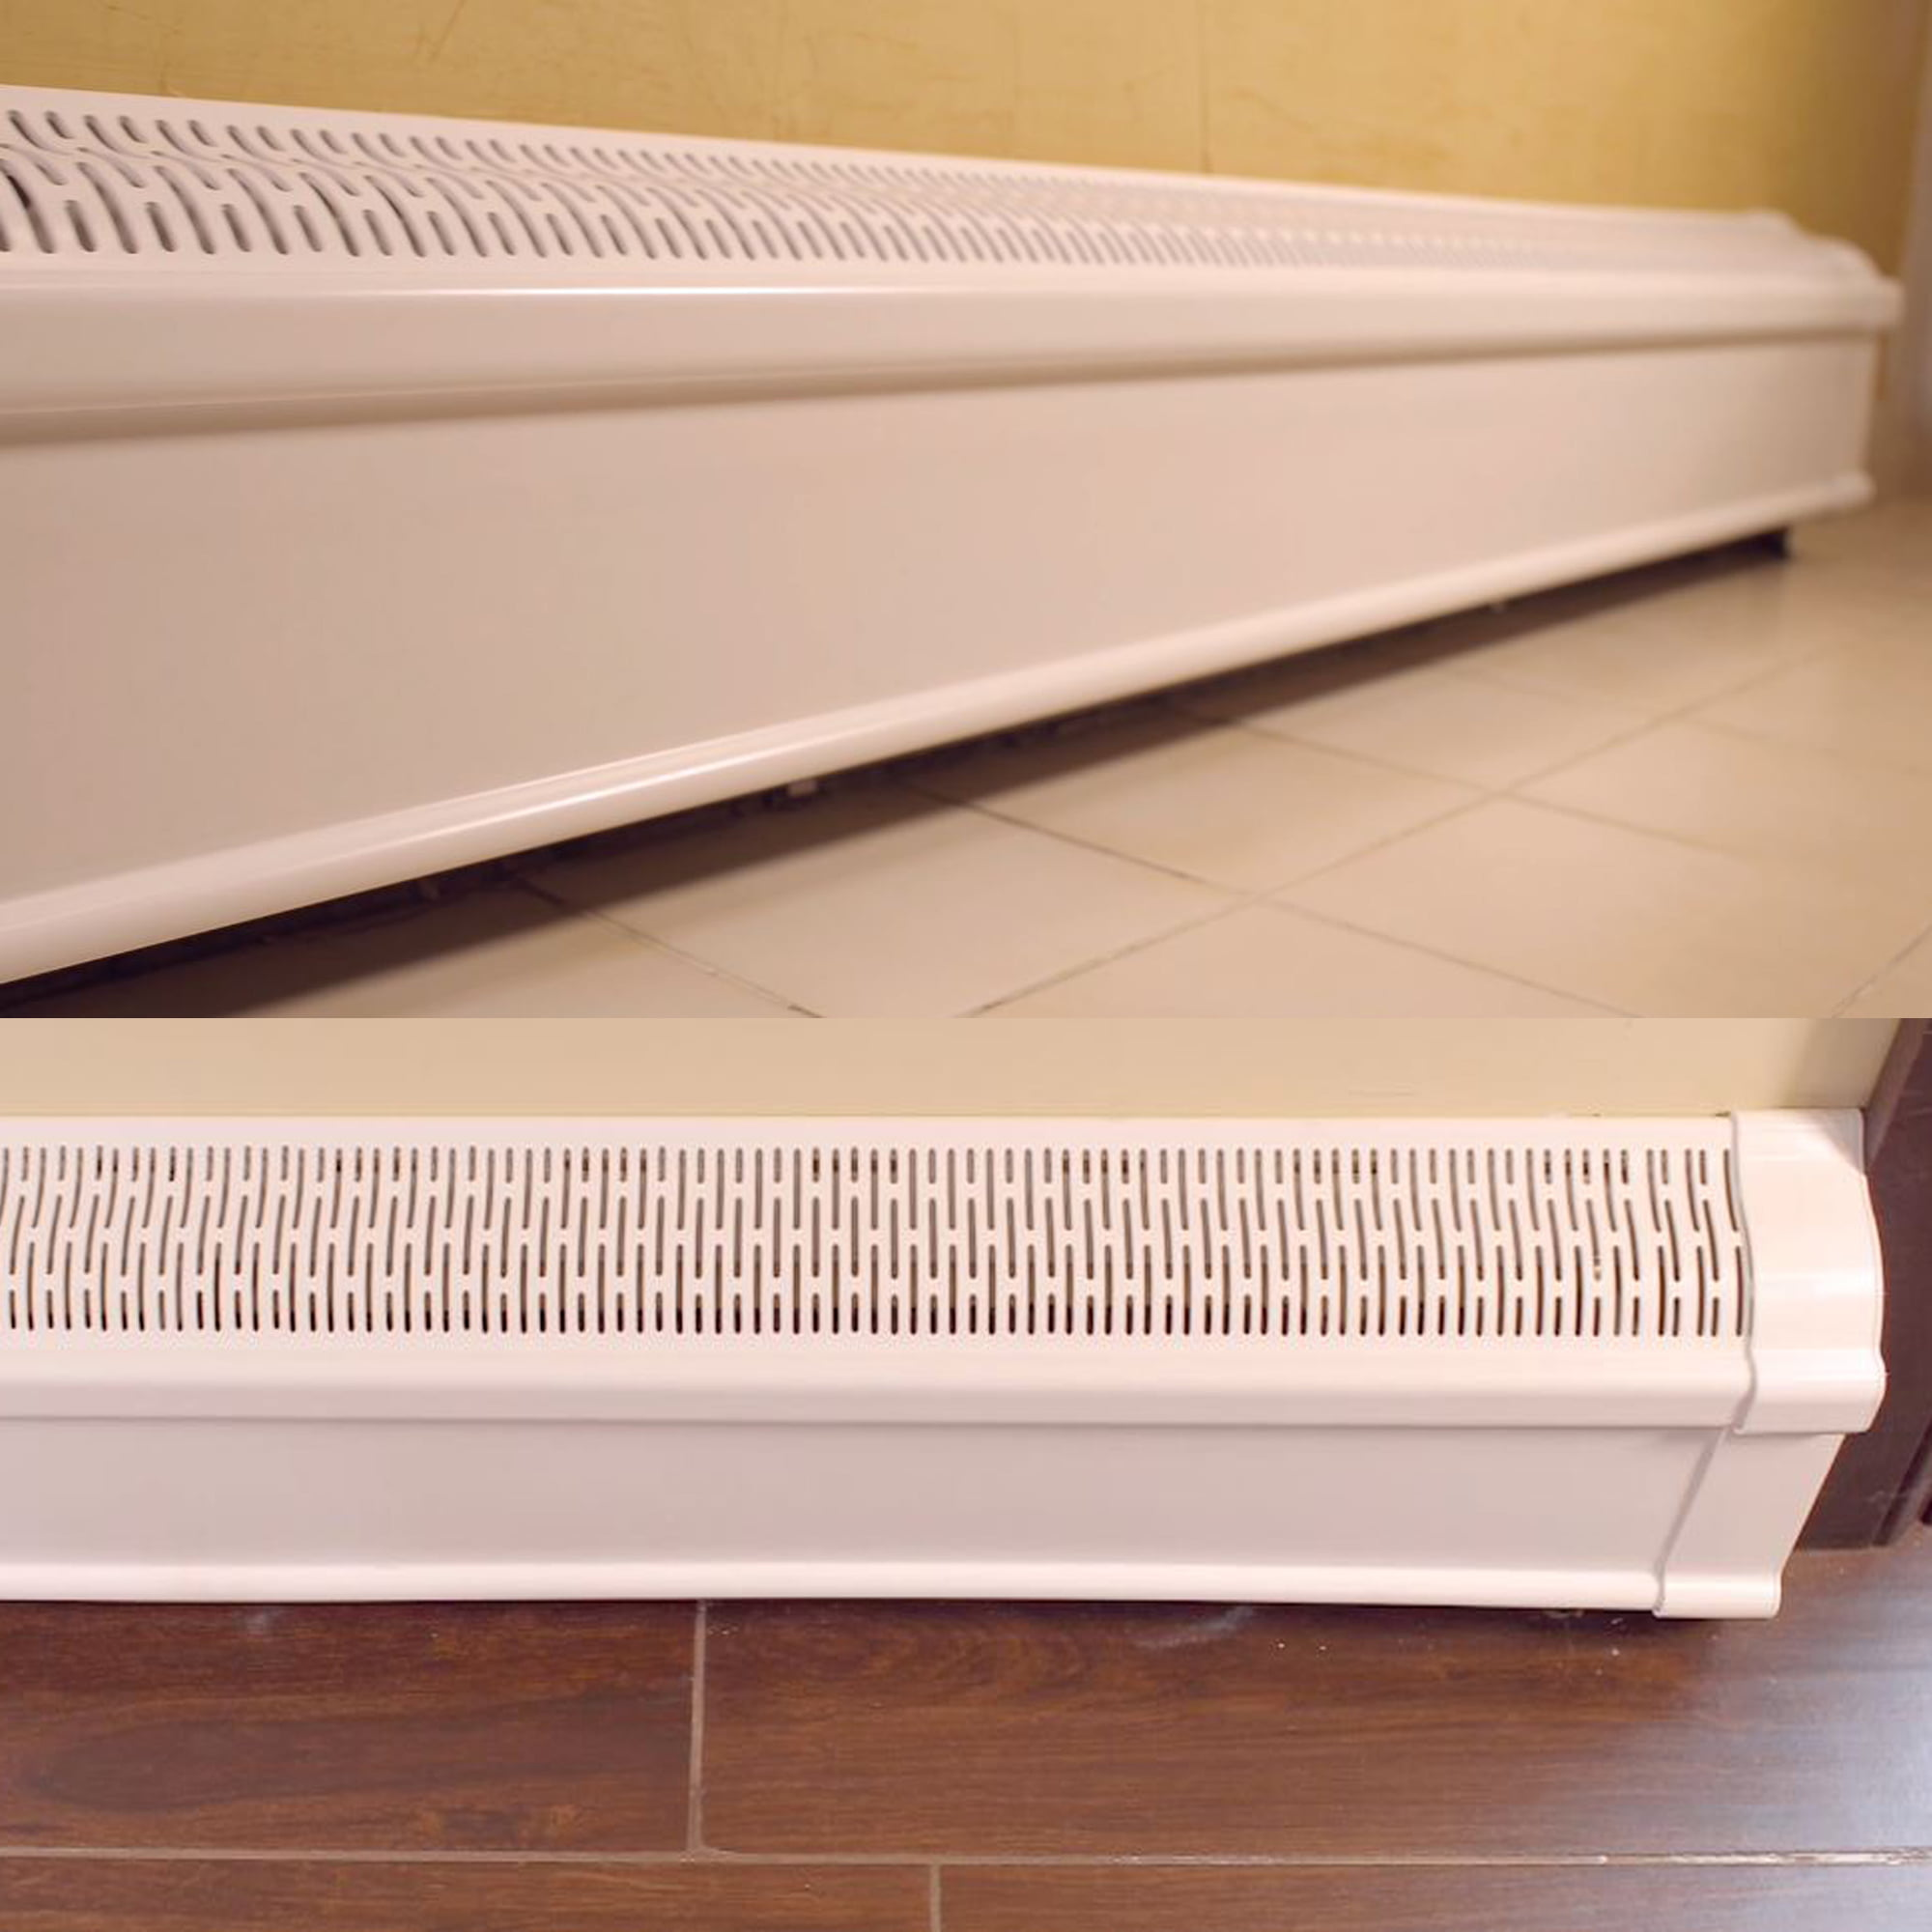 Baseboard Heat Covers Complete Set 4 Feet White Includes Right And Left End Caps Hot Water Hydronic Heater Baseboard Cover Enclosure Replacement Kit For Home Rust Proof Plastic Walmart Com Walmart Com